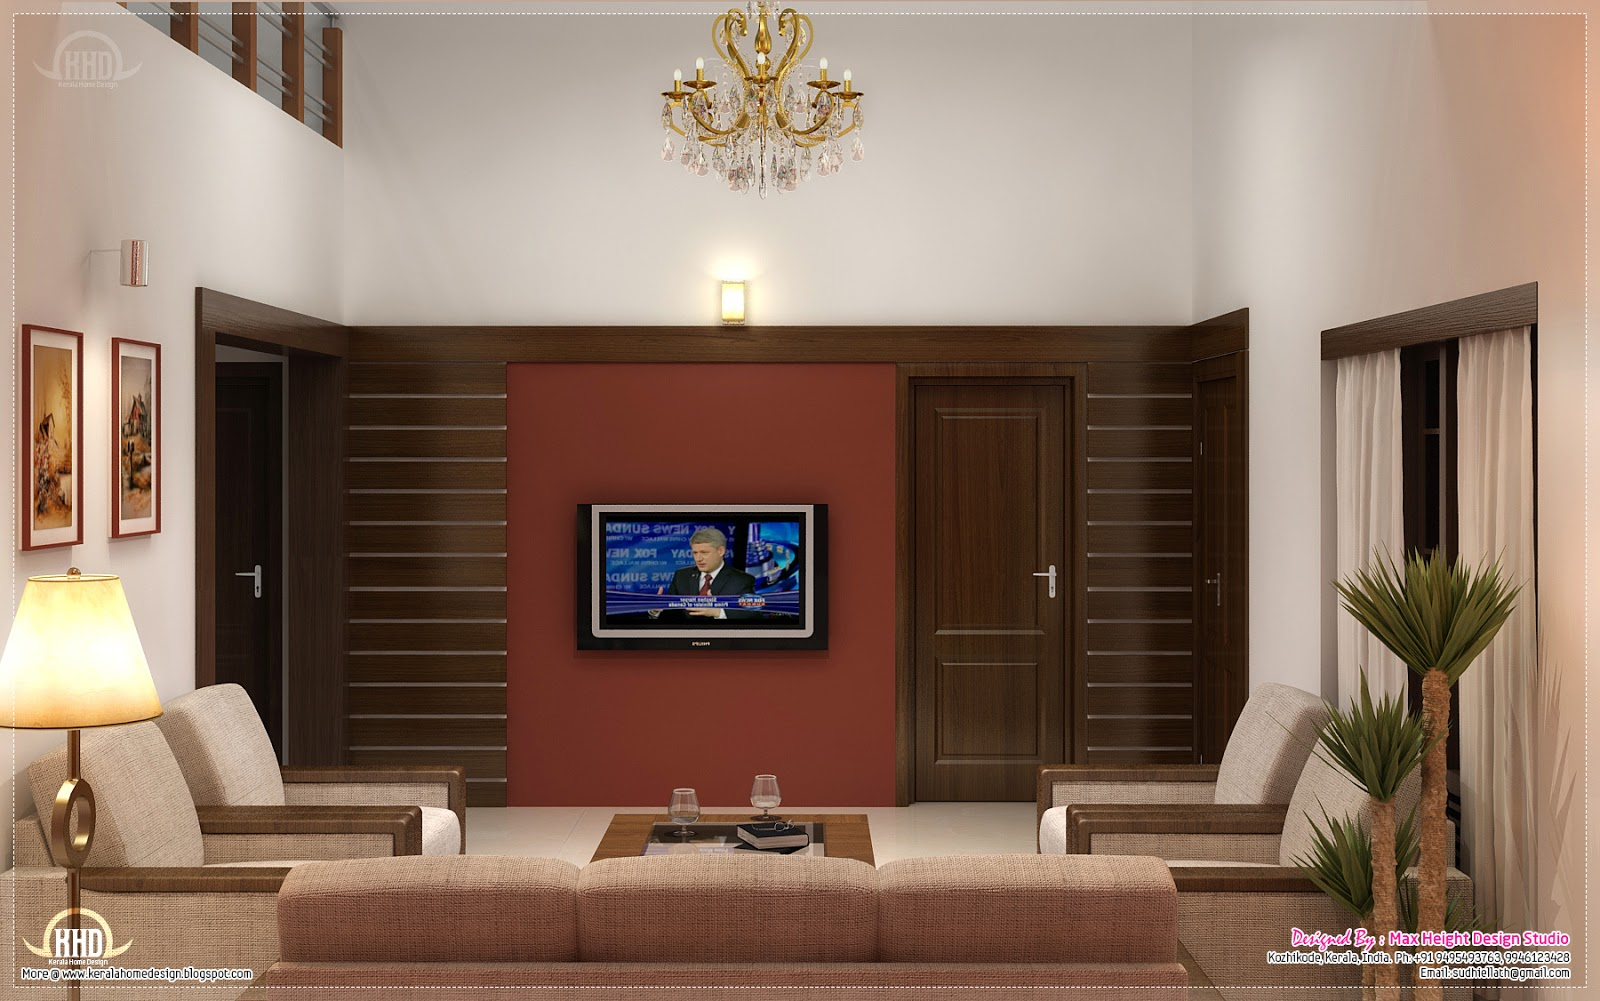 Home interior design ideas home kerala plans House model interior design